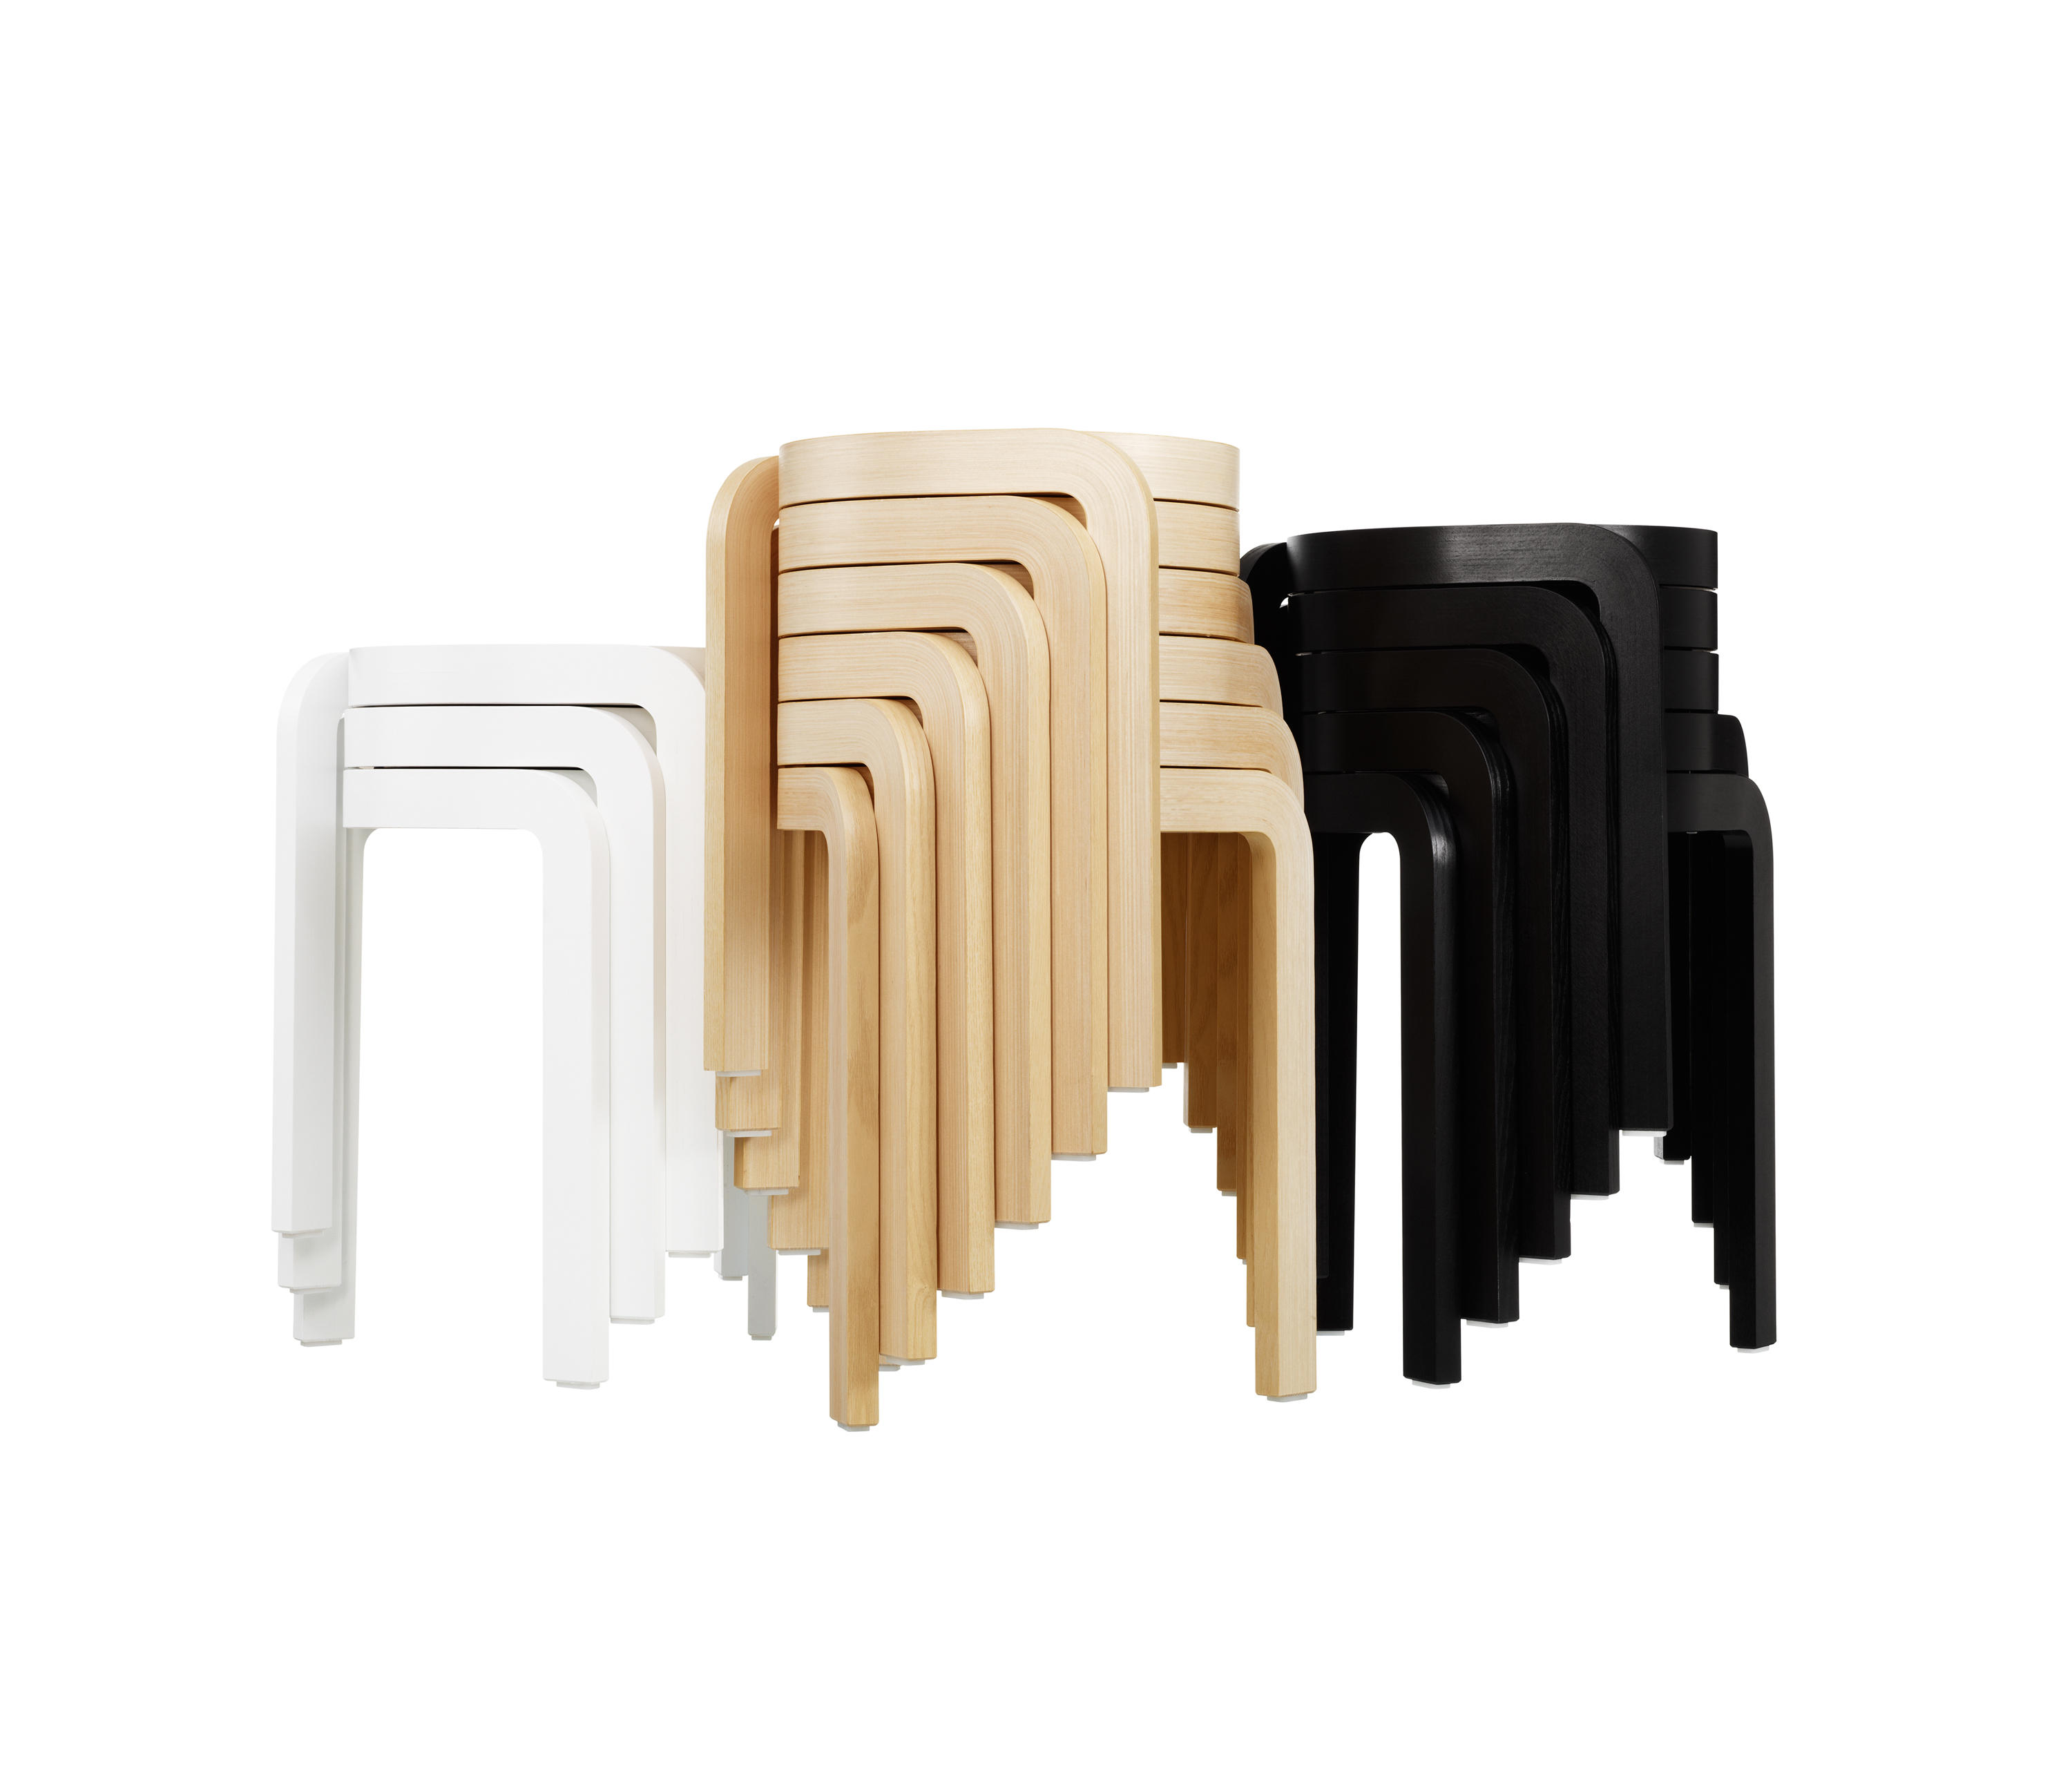 Spin Stackable Stool Stools From Swedese Architonic